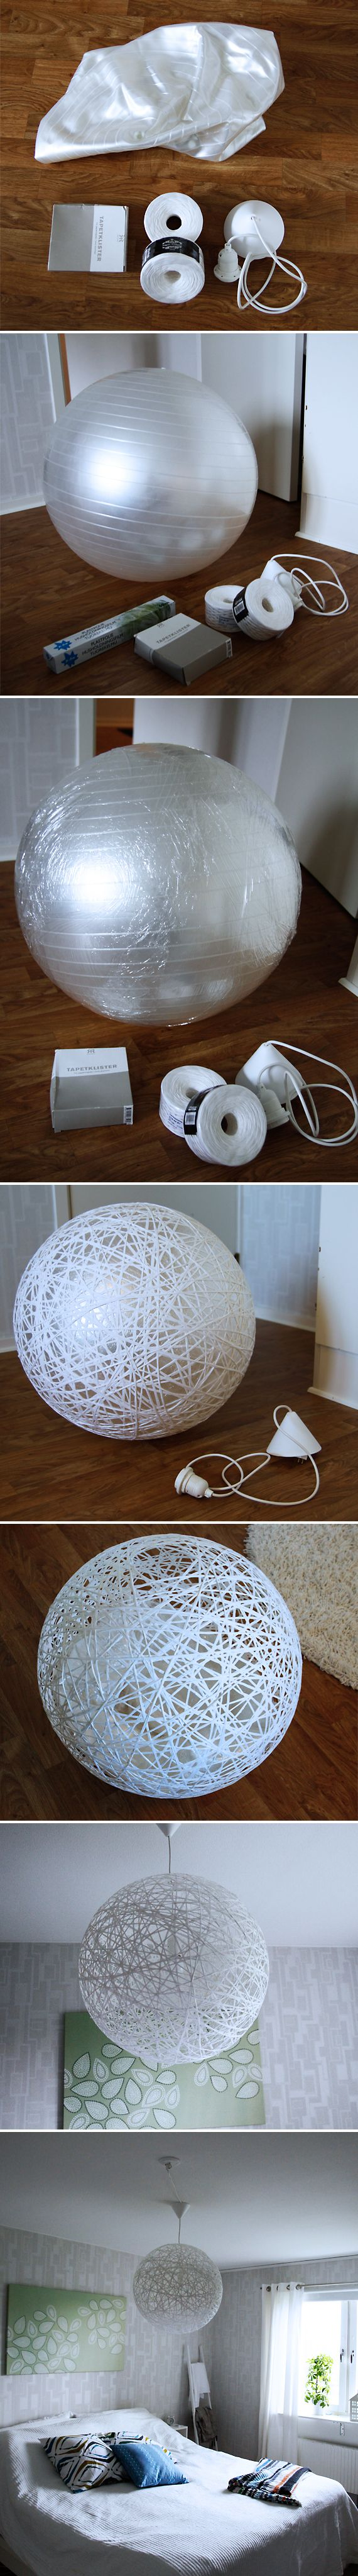 To make this amazing chandelier you need to grab your aerobic ball, wrap around it white string and glue it, leaving it to dry well before removing the ball. Add the bulb and you have an amazing lamp.